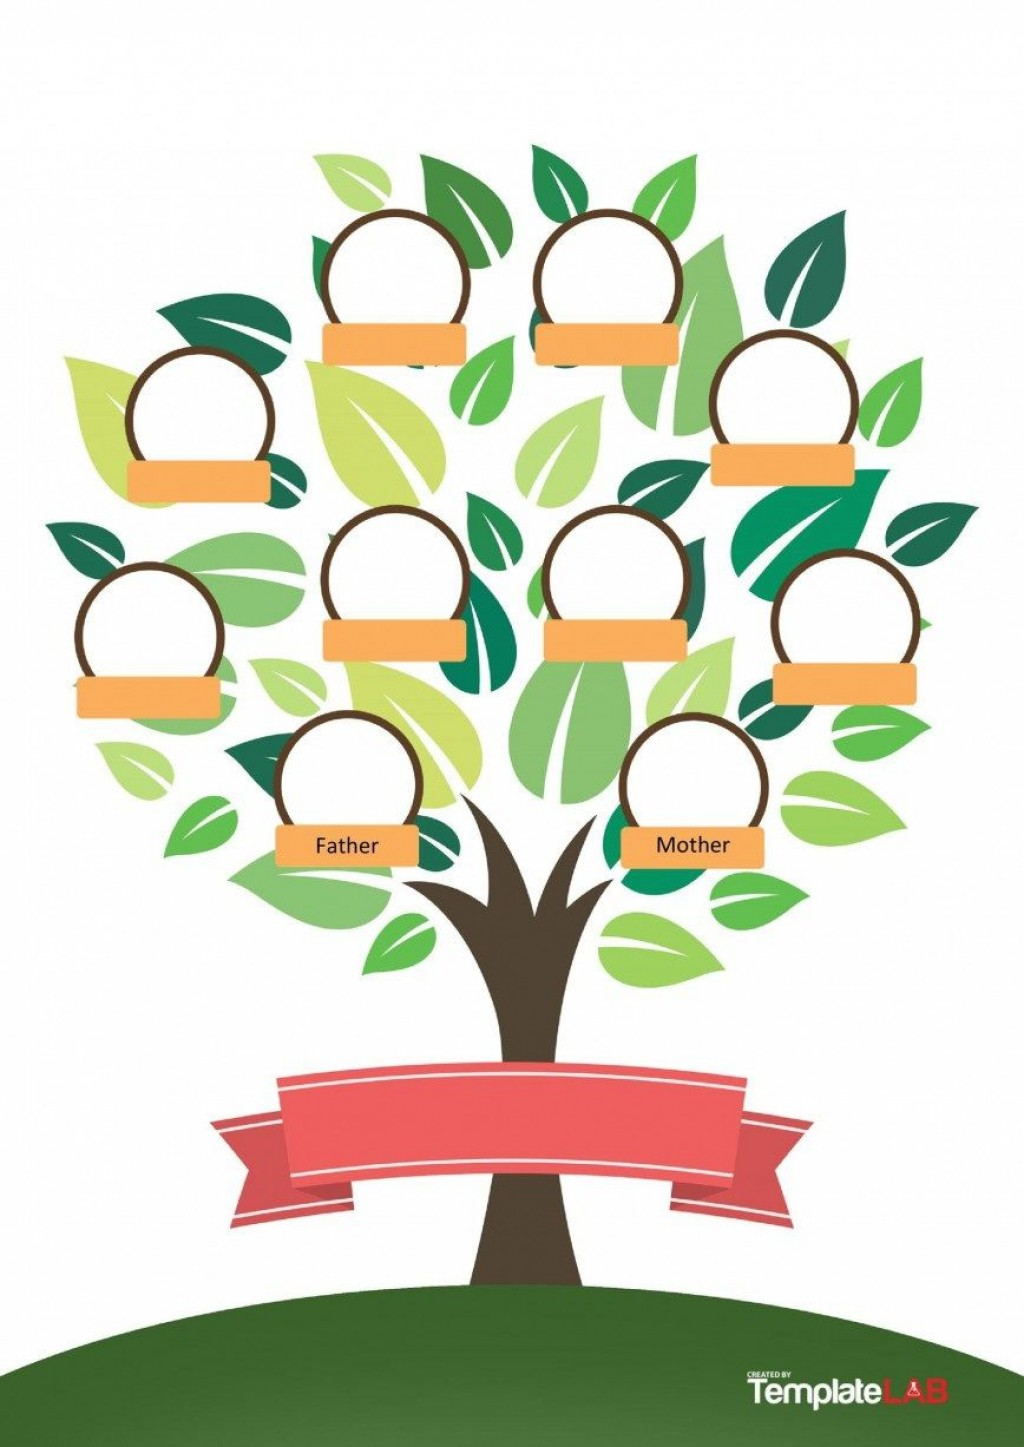 003 Magnificent Editable Family Tree Template Online Free Idea Large